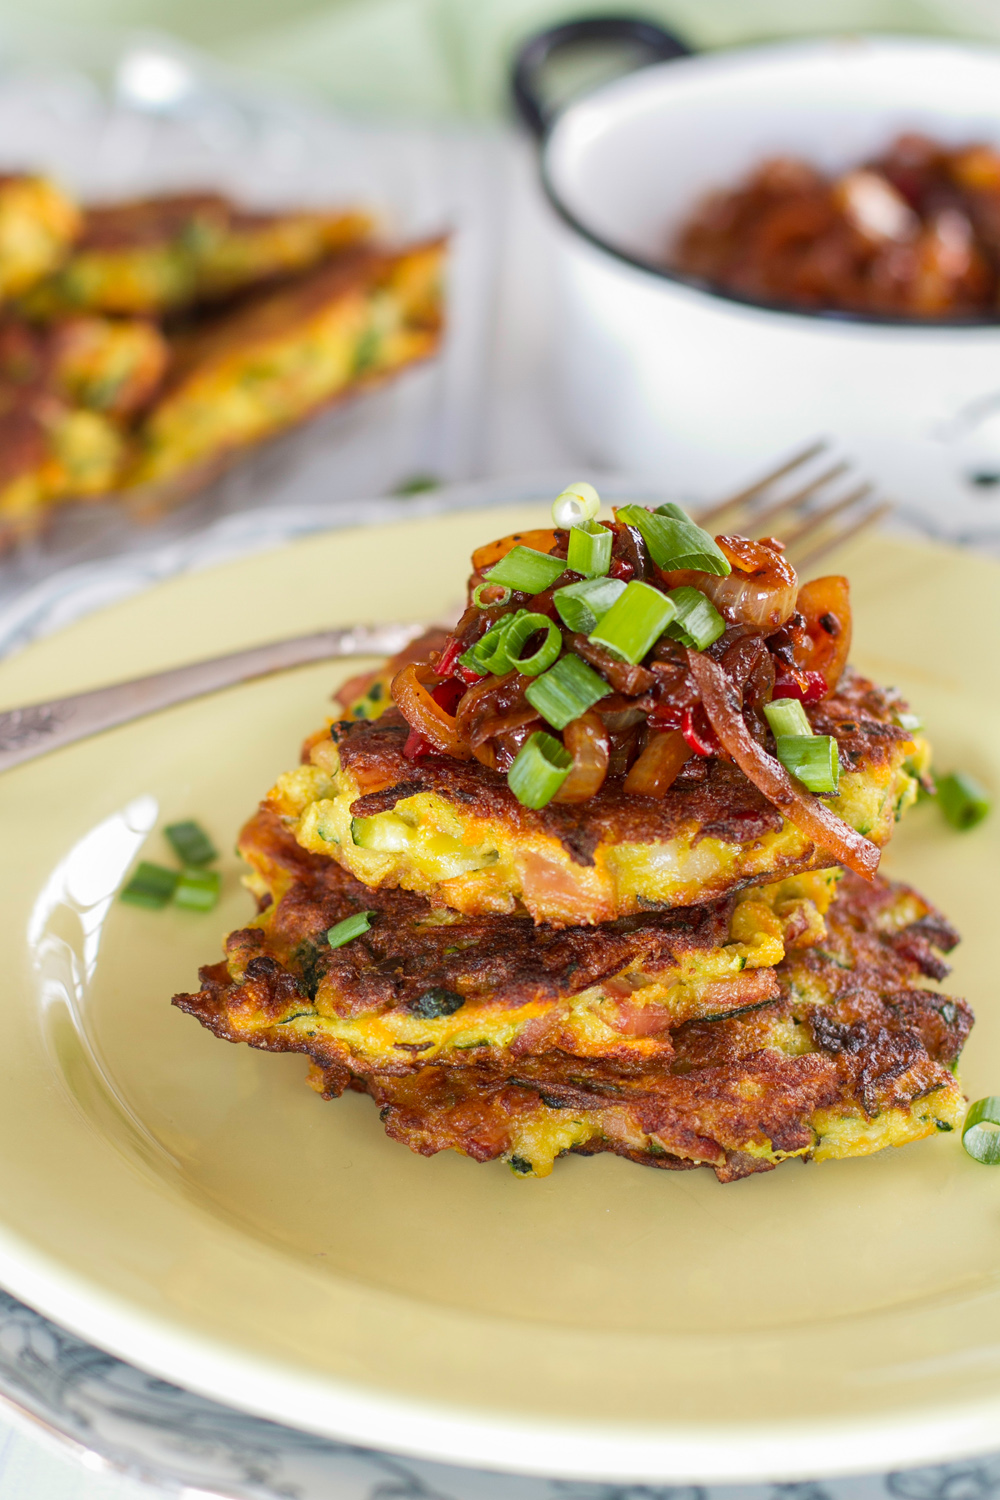 ... Post: Eat Drink Paleo, Zucchini & Bacon Fritters with Onion Relish